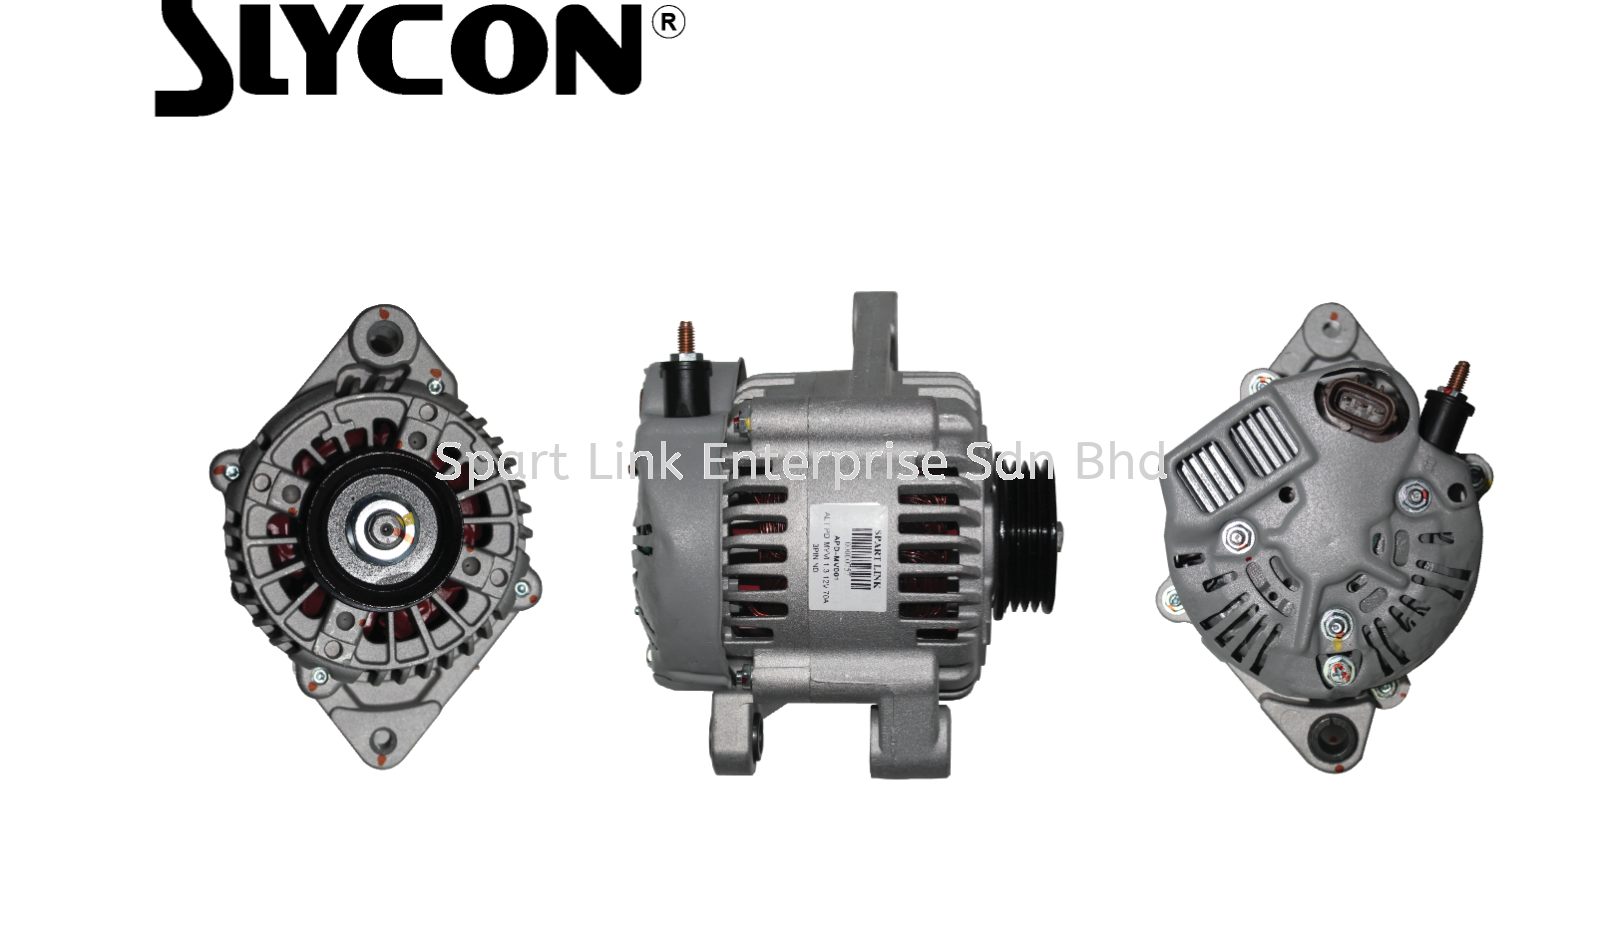 Alternator Perodua Myvi 1.3 12V 70A 3pin